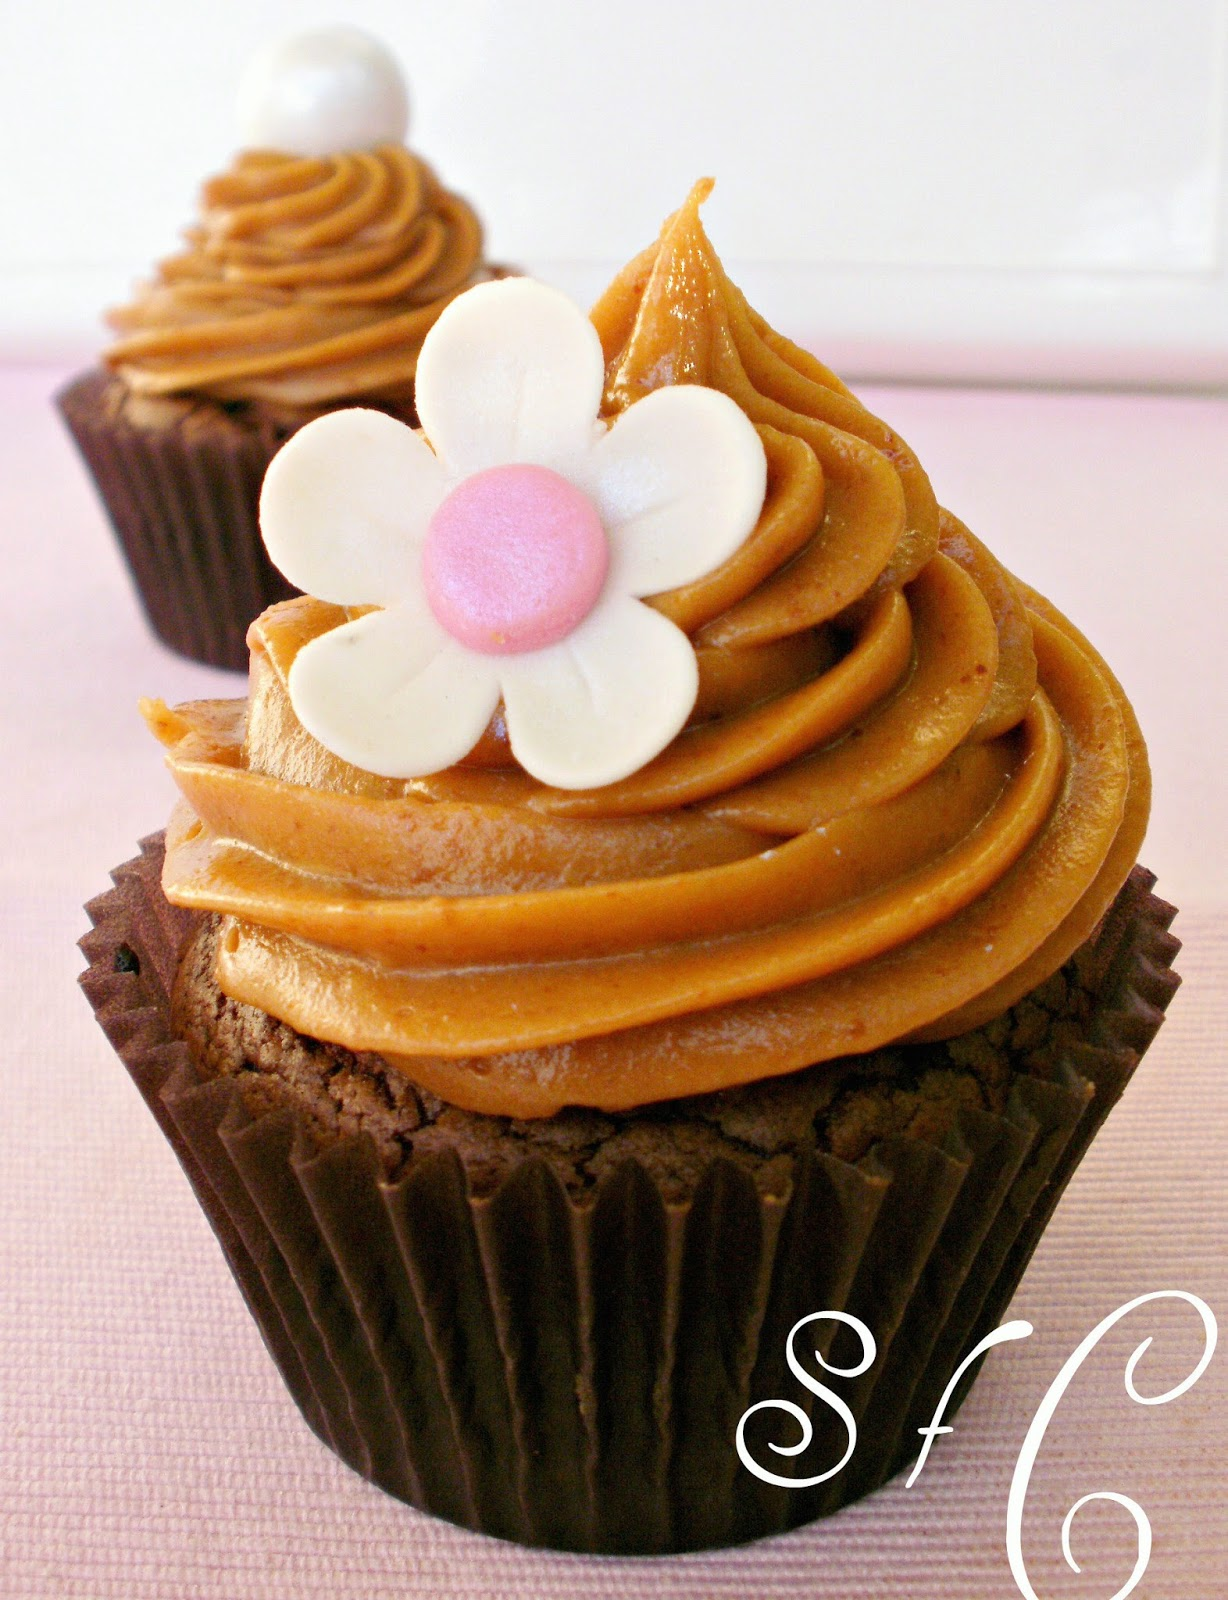 Συνταγες Για ΠΑΙΔΙΚΑ Παρτυ http://www.sugarflowerscreations.com/2012/11/cup-cakes-s.html